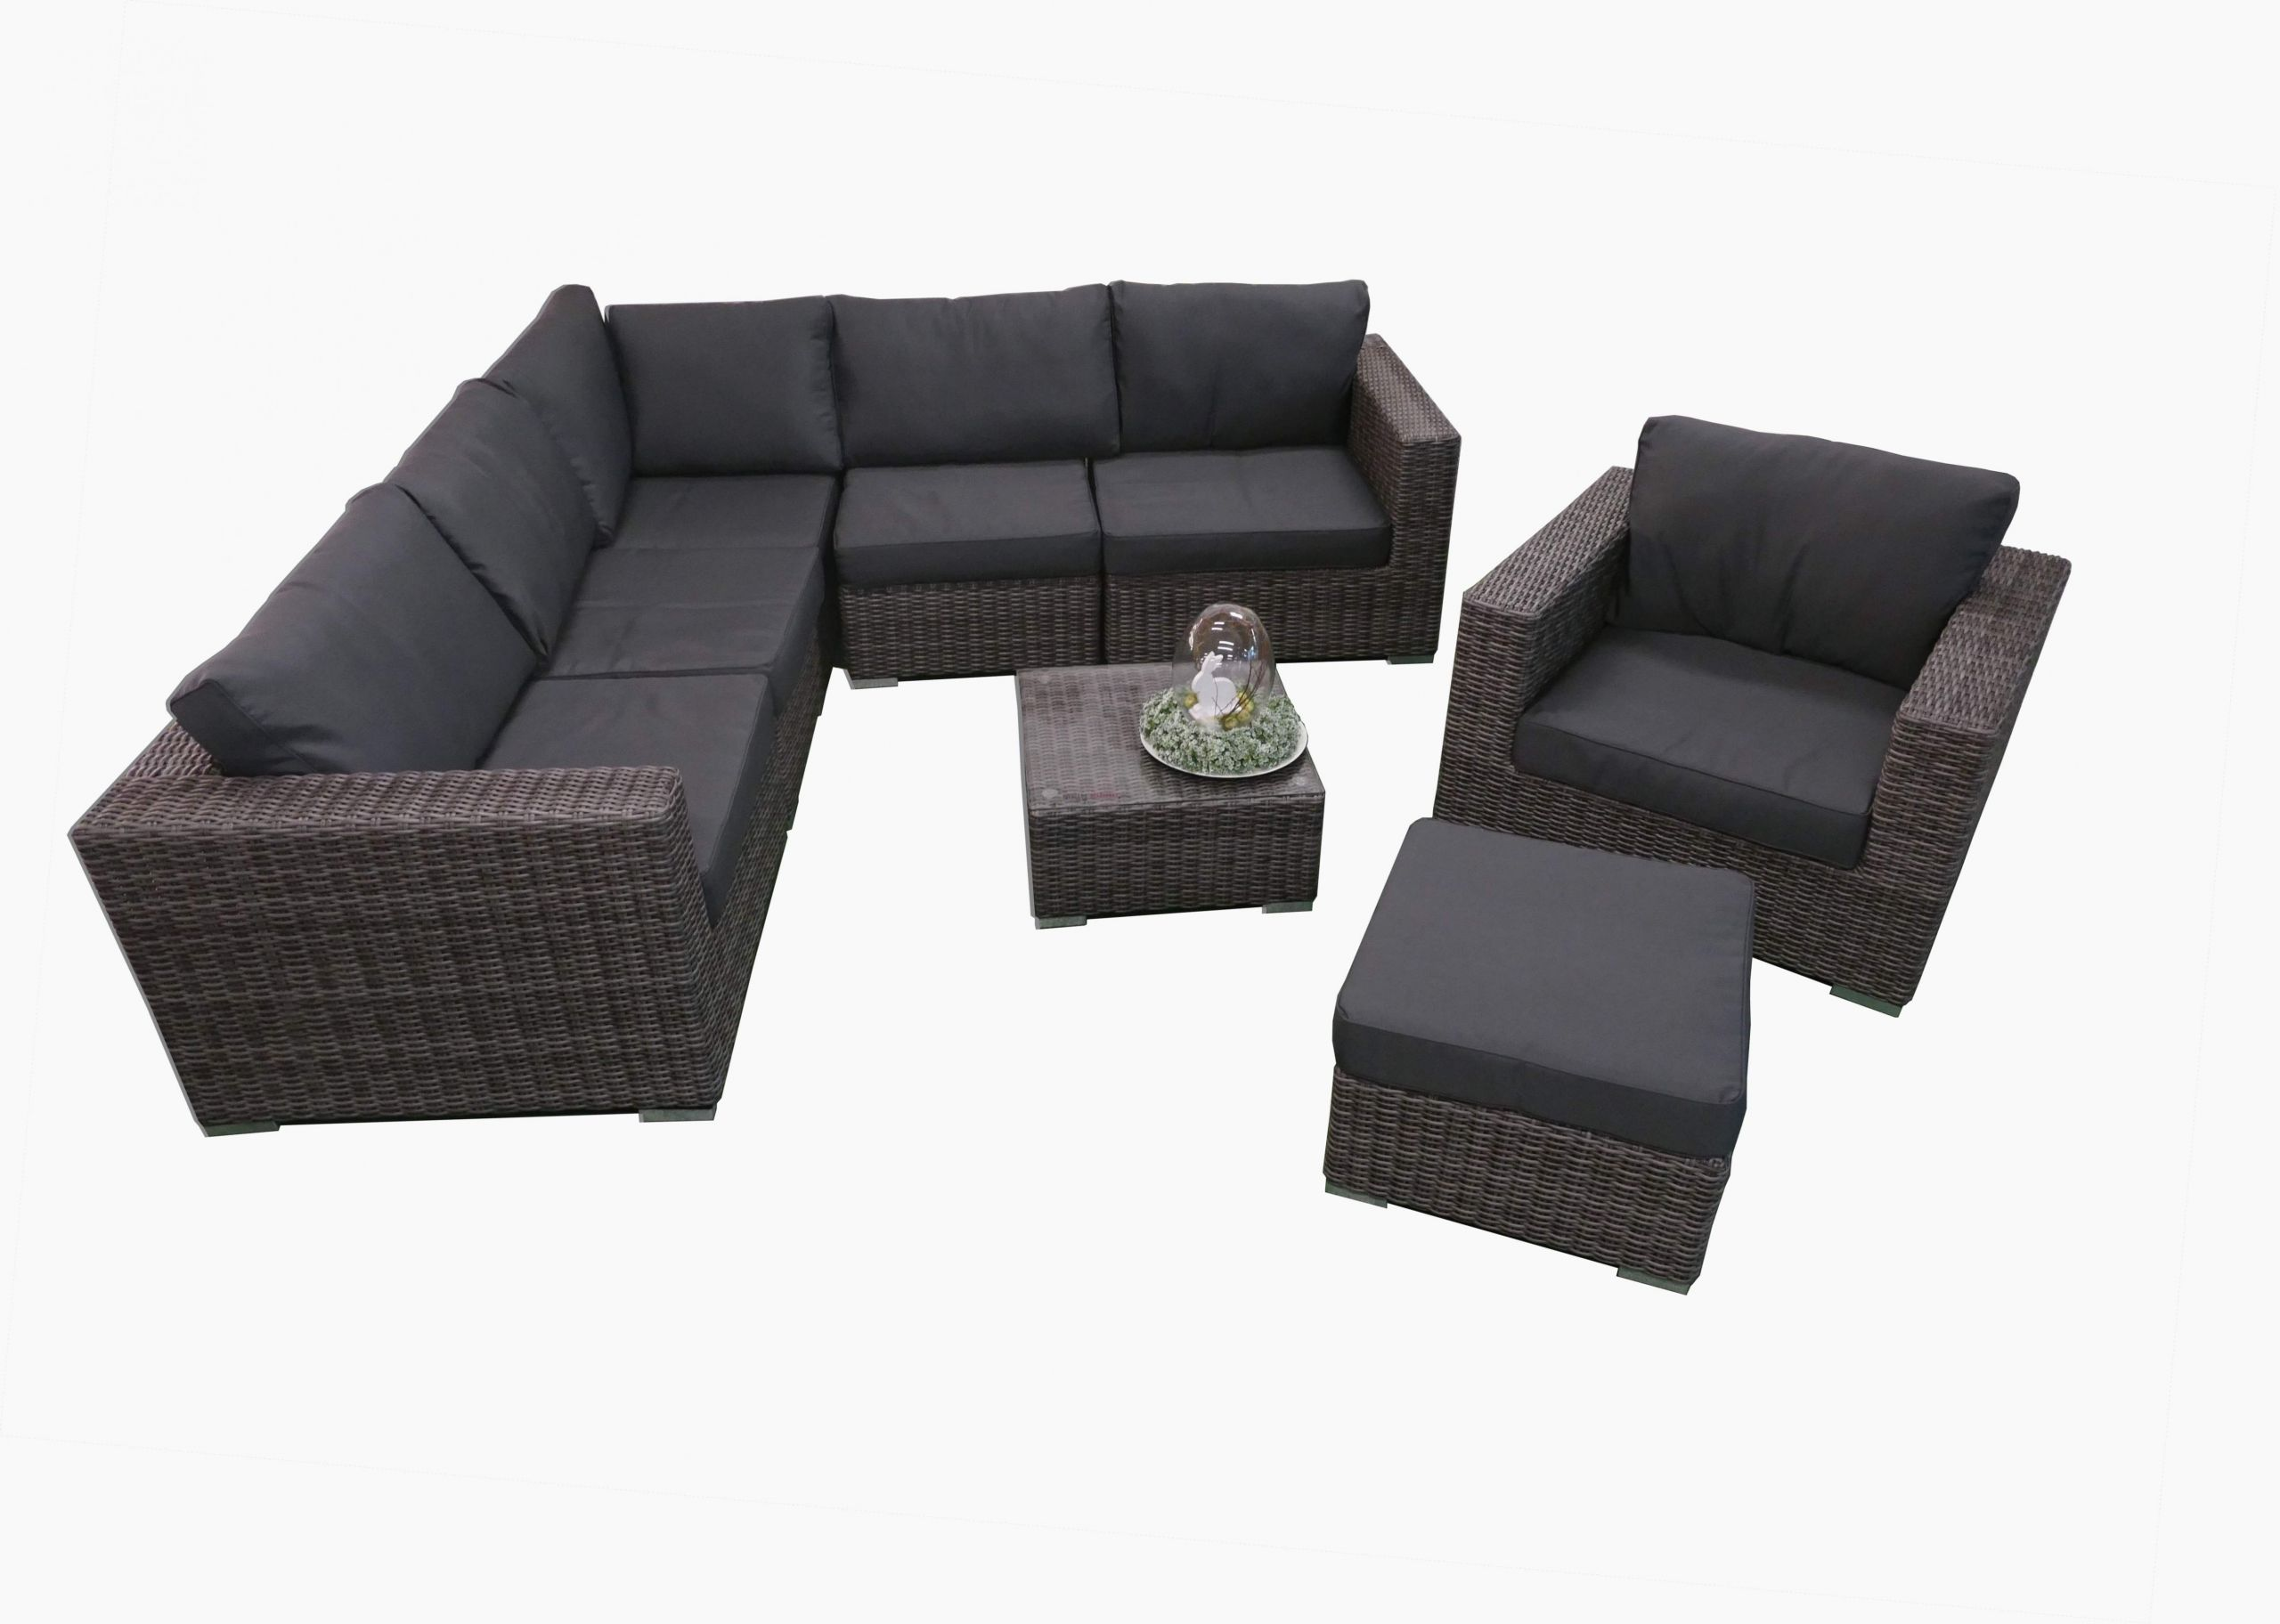 interior sofa for bedrooms fab cool sofas for bedrooms elegant sofa vor fenster sofa vor fenster 2